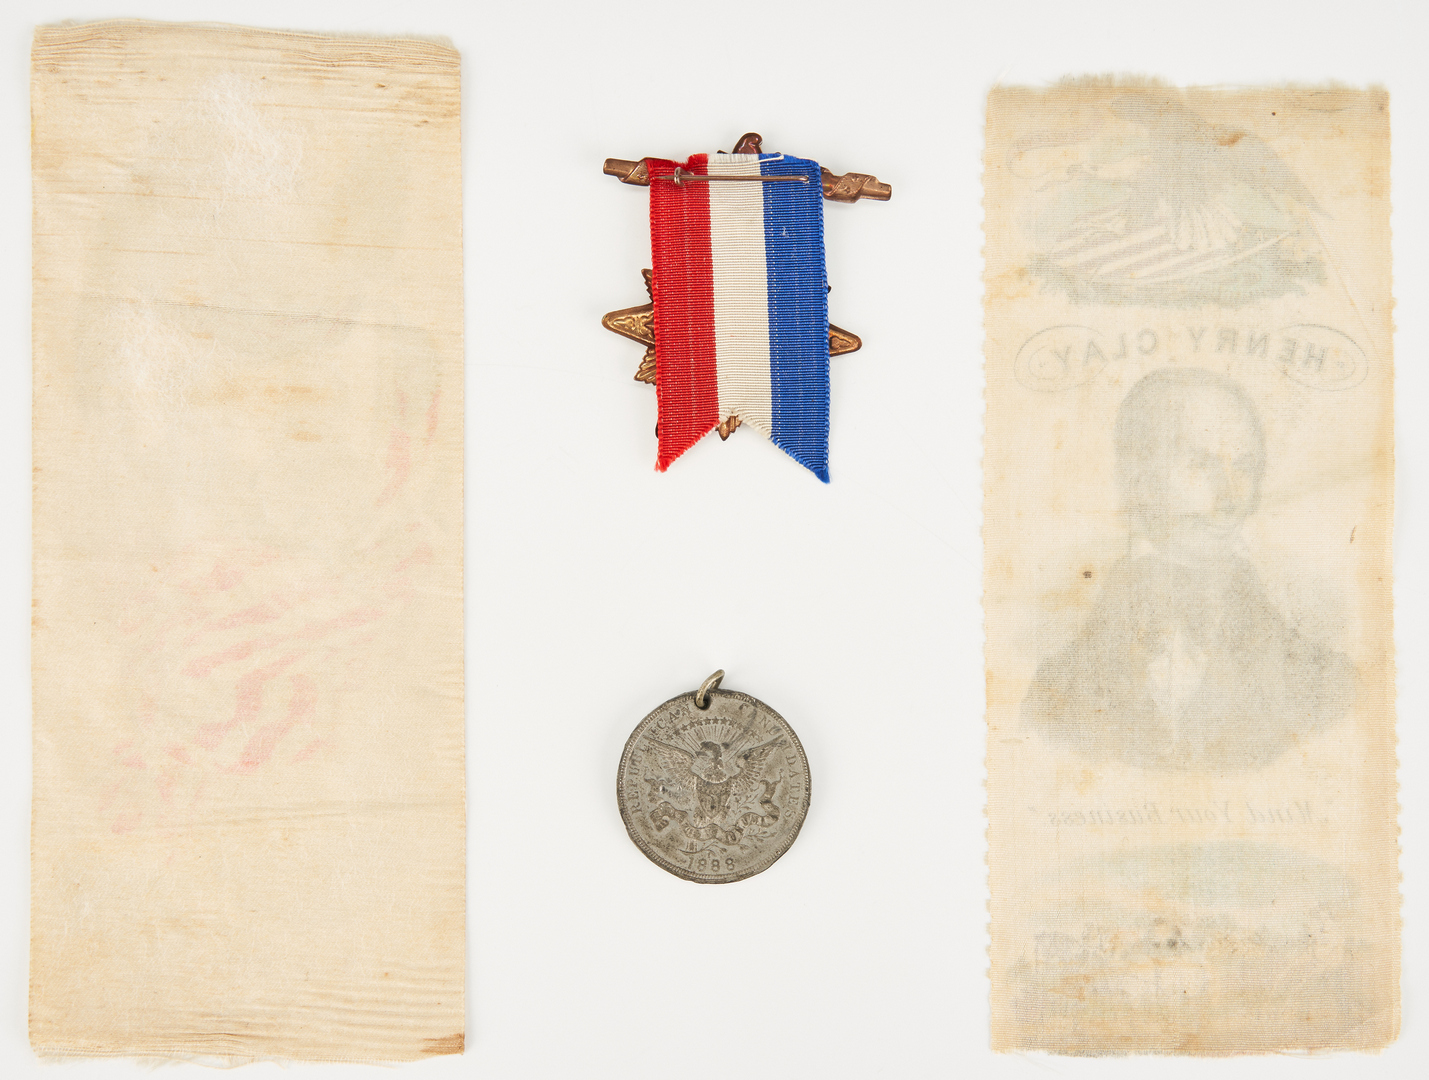 Lot 656: 4 Political Items, incl. Henry Clay Ribbon, 1844